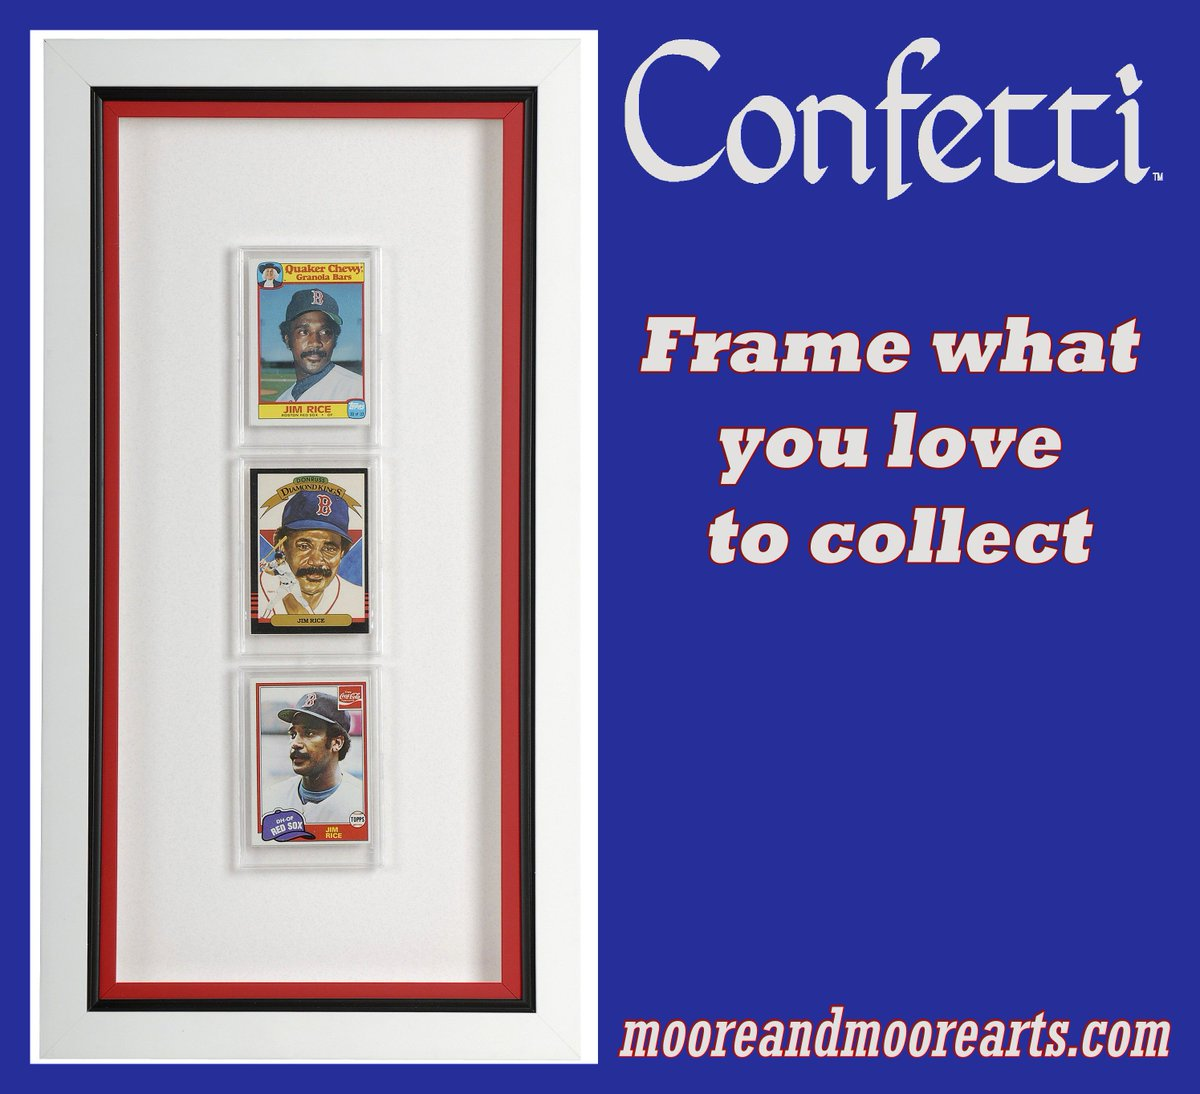 Custom Frame your Treasures to enjoy #MLB #WoldSeries #ThisTeam  #baseball #collectibles #sports #customframe #Interiordesign #SFBayarea<br>http://pic.twitter.com/QEEqJLt35t